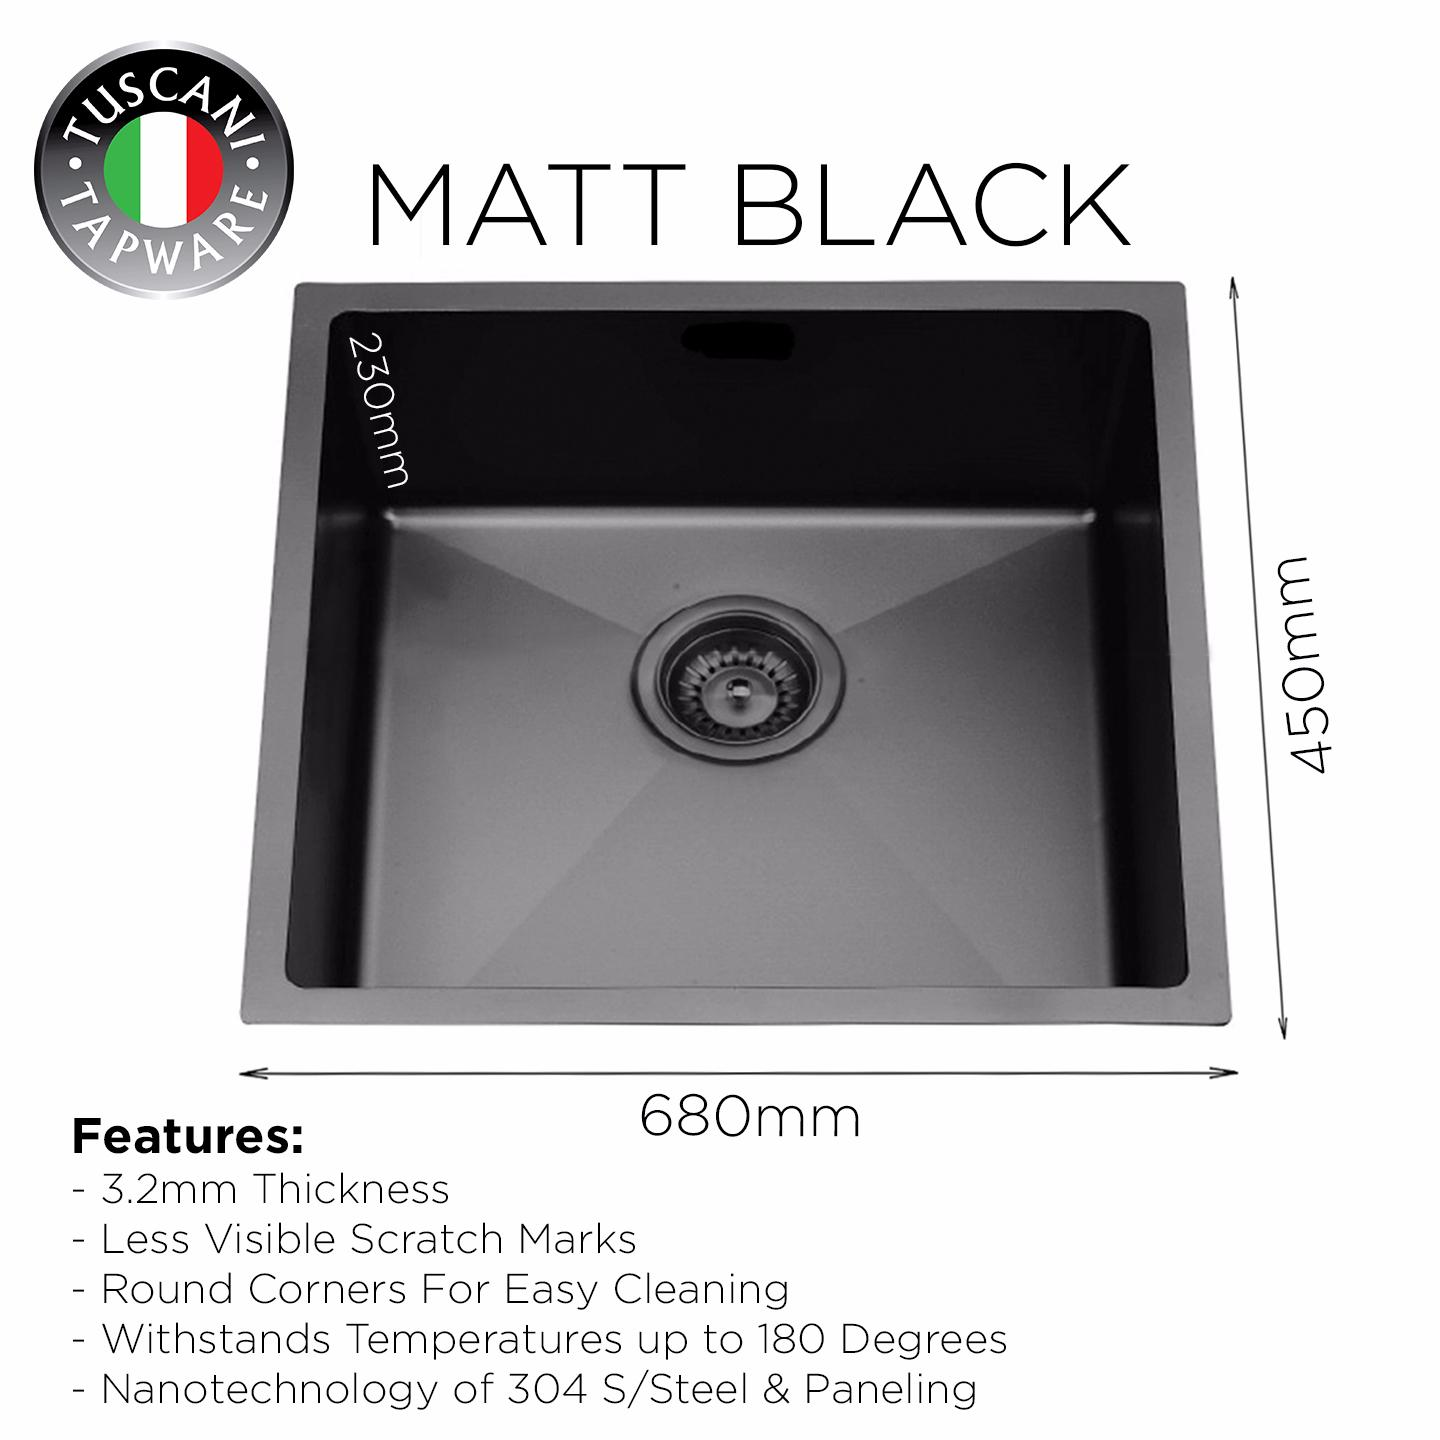 MBX-680 Black Kitchen Sink